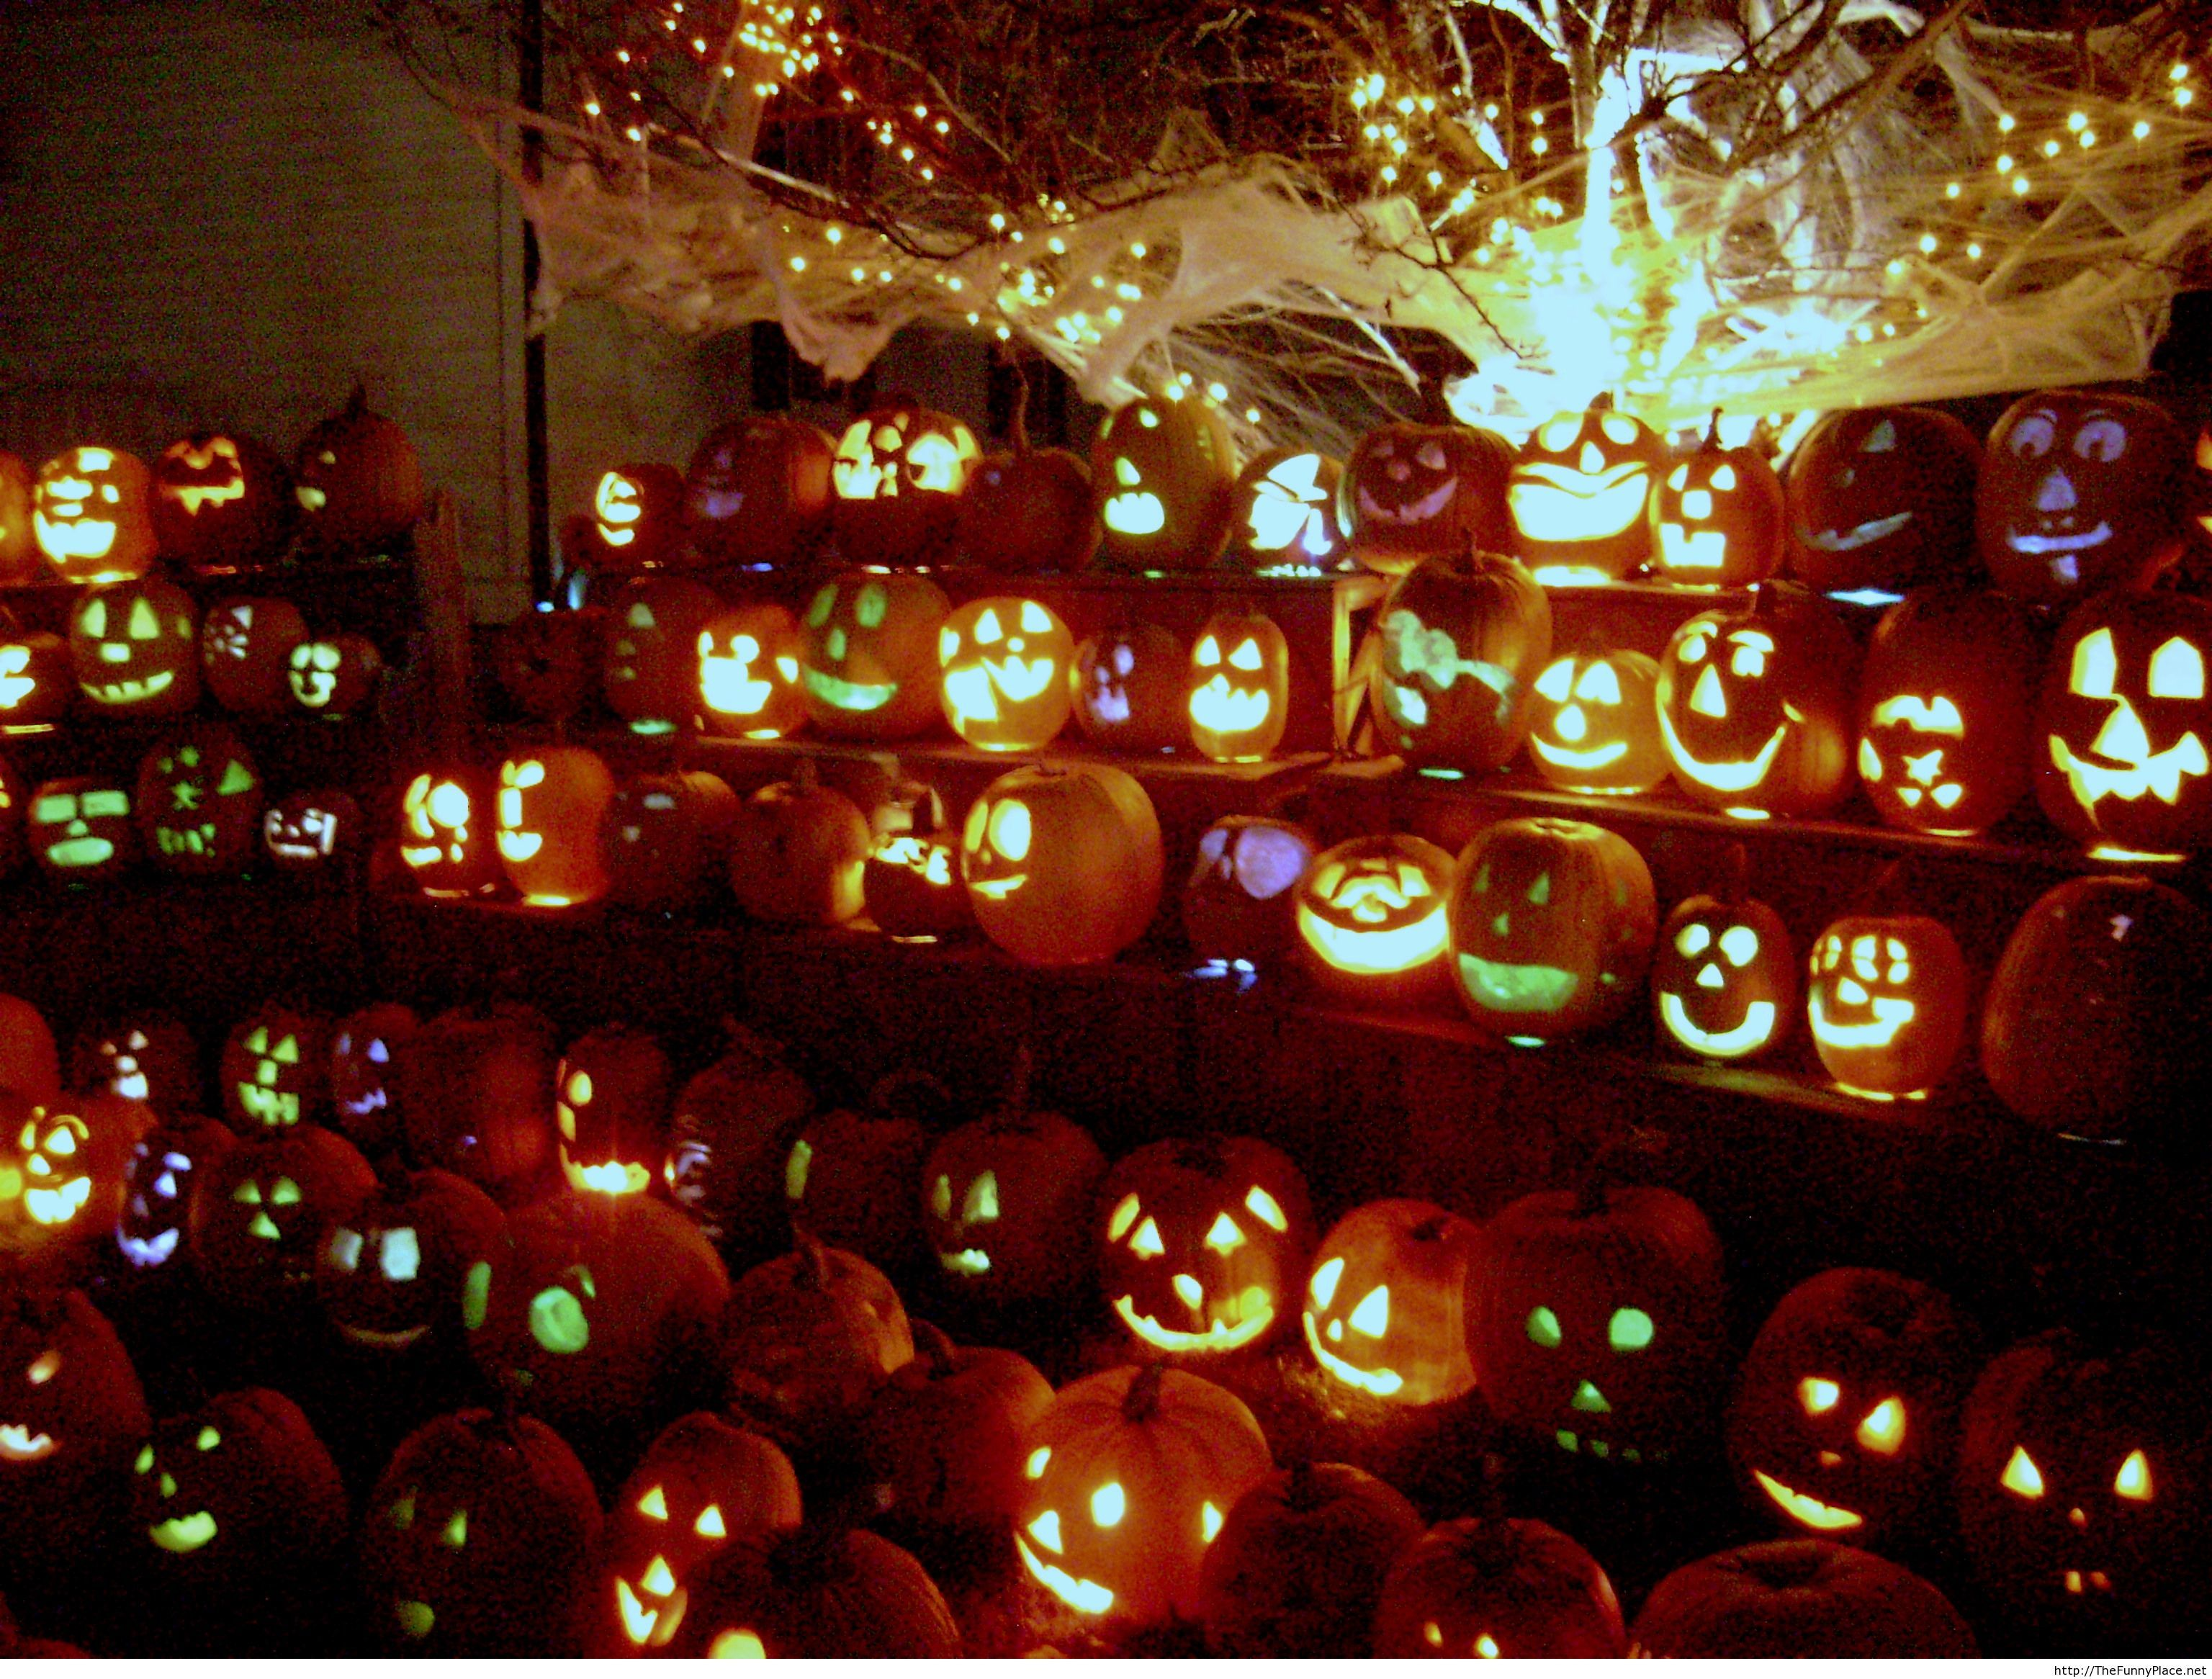 Halloween pumpkins lined up so funny